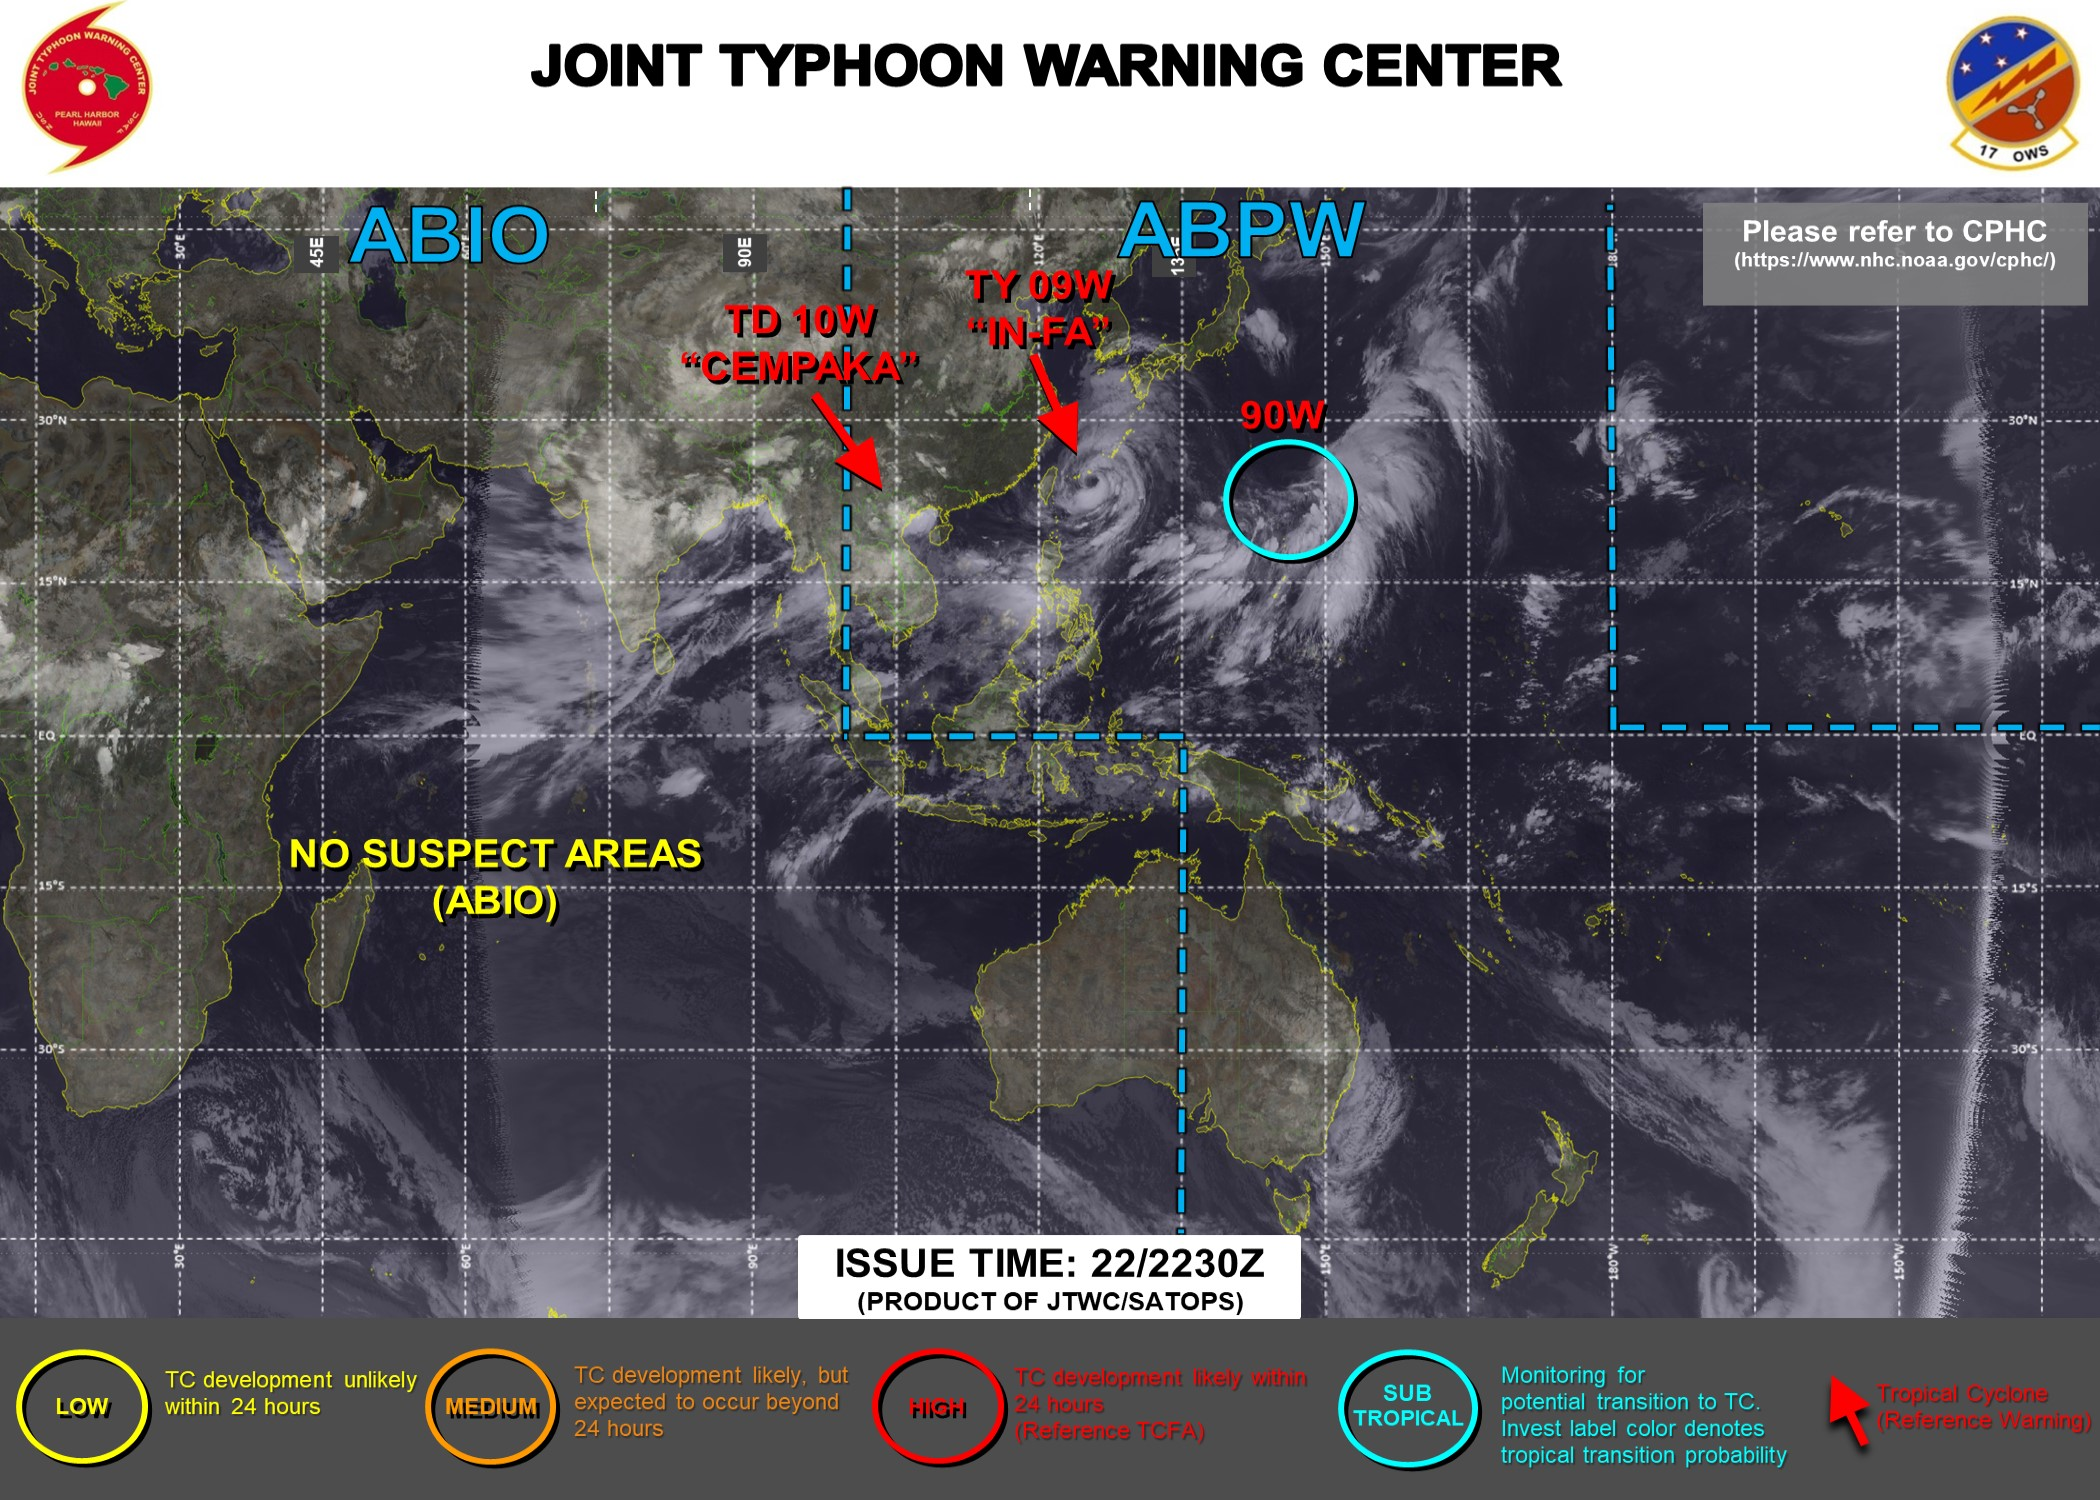 INVEST 90W WAS FIRST MENTIONNED ON THE JTWC MAP AT 22/06UTC. IT IS ASSESSED TO BE A SUBTROPICAL SYSTEM(HYBRID WITH BOTH MID-LATITUDE AND TROPICAL FEATURES). THE AREA WAS UP-GRADED TO HIGH AT 22/22UTC. ON THE OTHER END JTWC HAS BEEN ISSUING 6HOURLY WARNINGS ON 09W AND 10W. 3HOURLY SATELLITE BULLETINS ARE ISSUED FOR BOTH SYSTEMS.